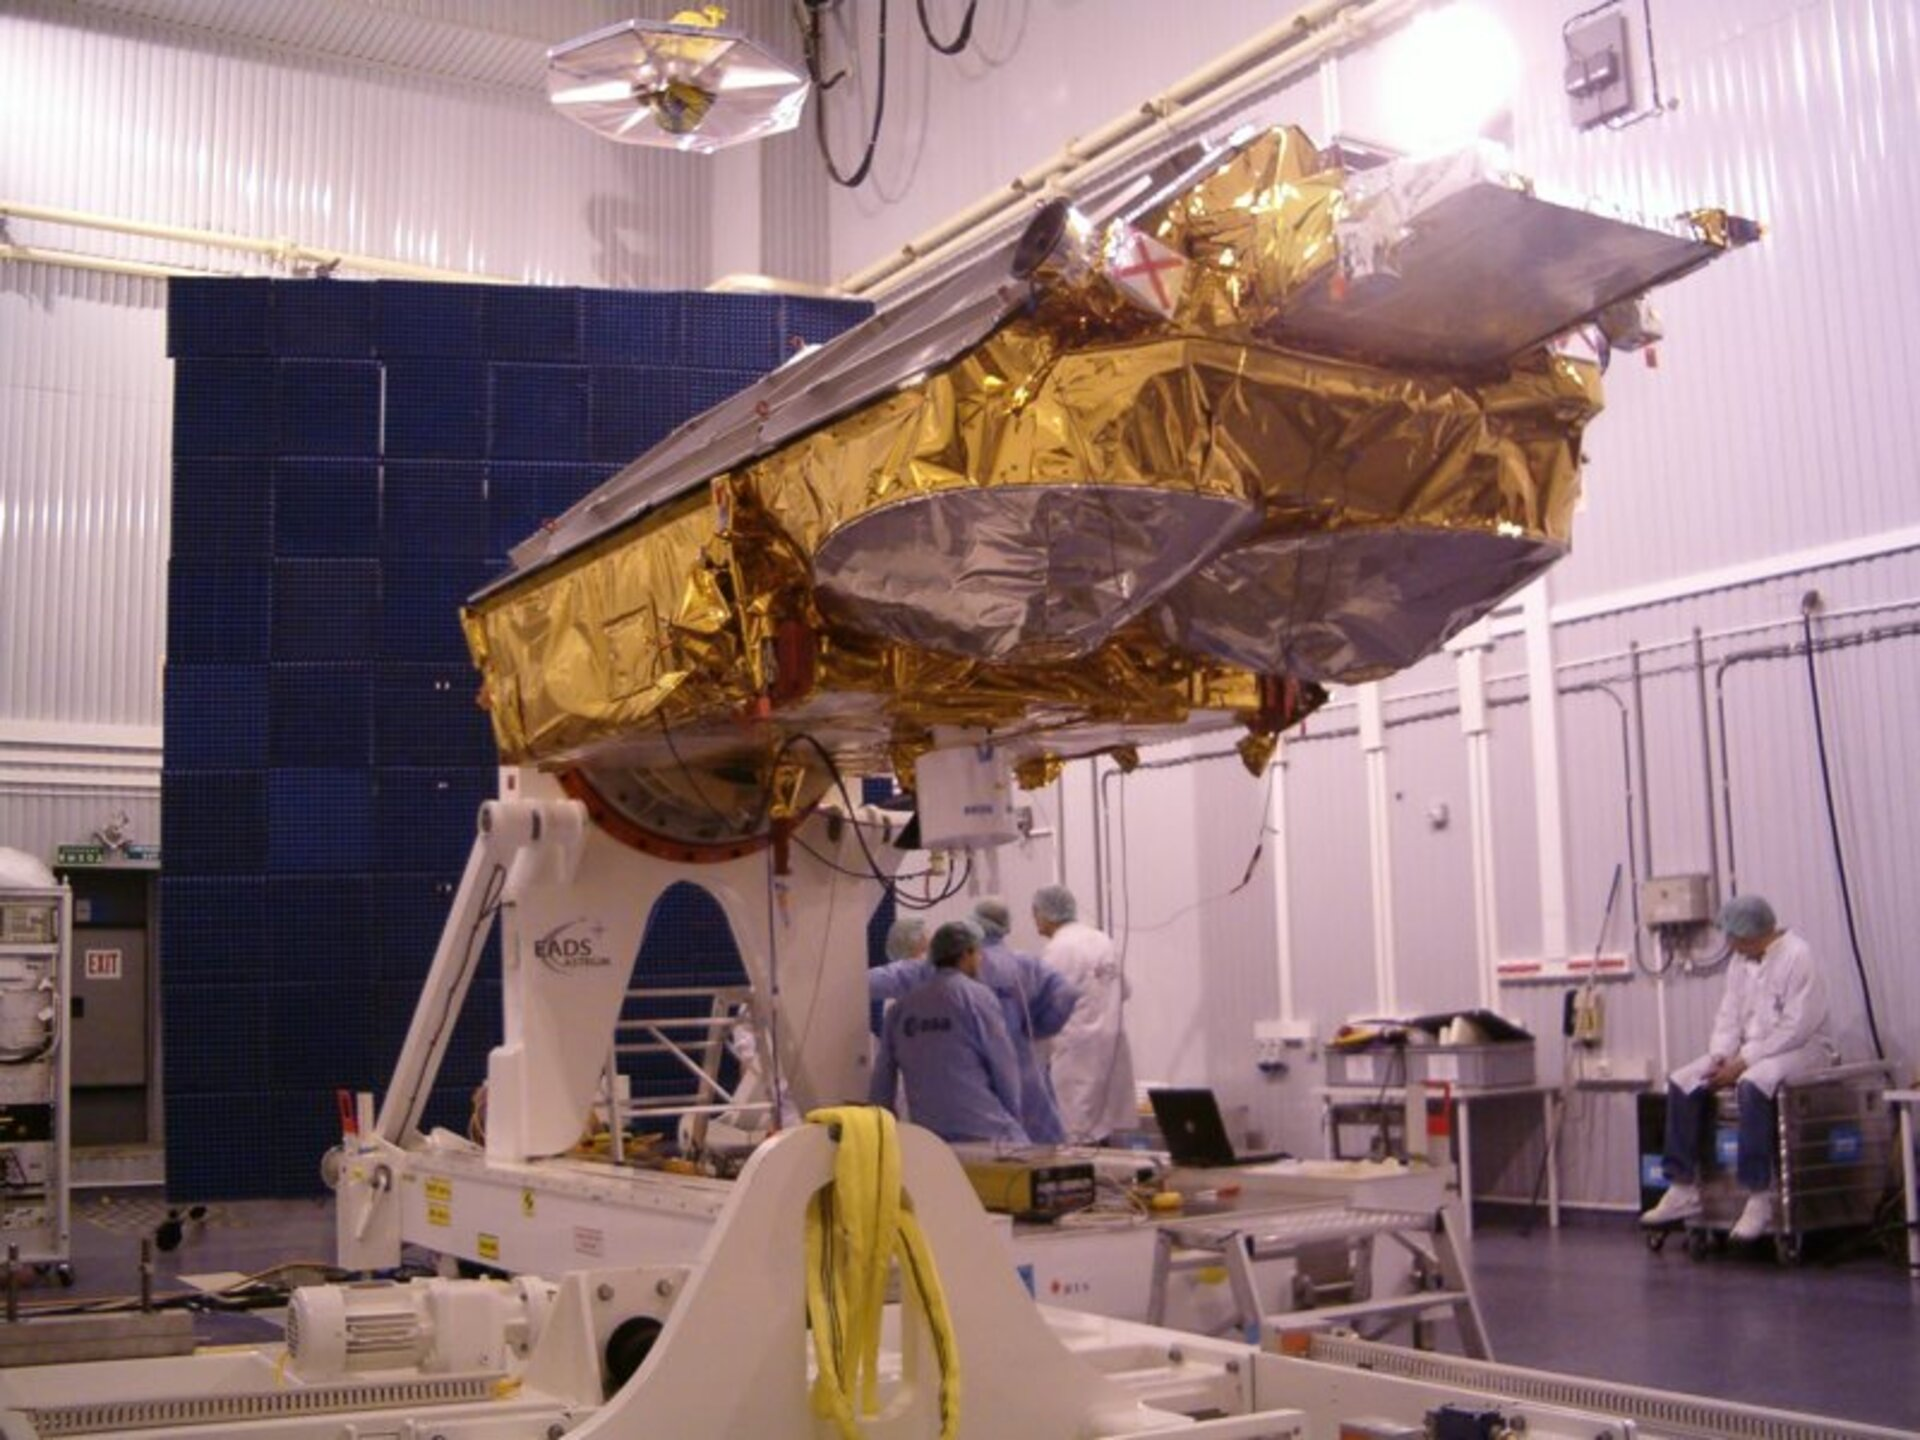 First CryoSat satellite during launch campaign